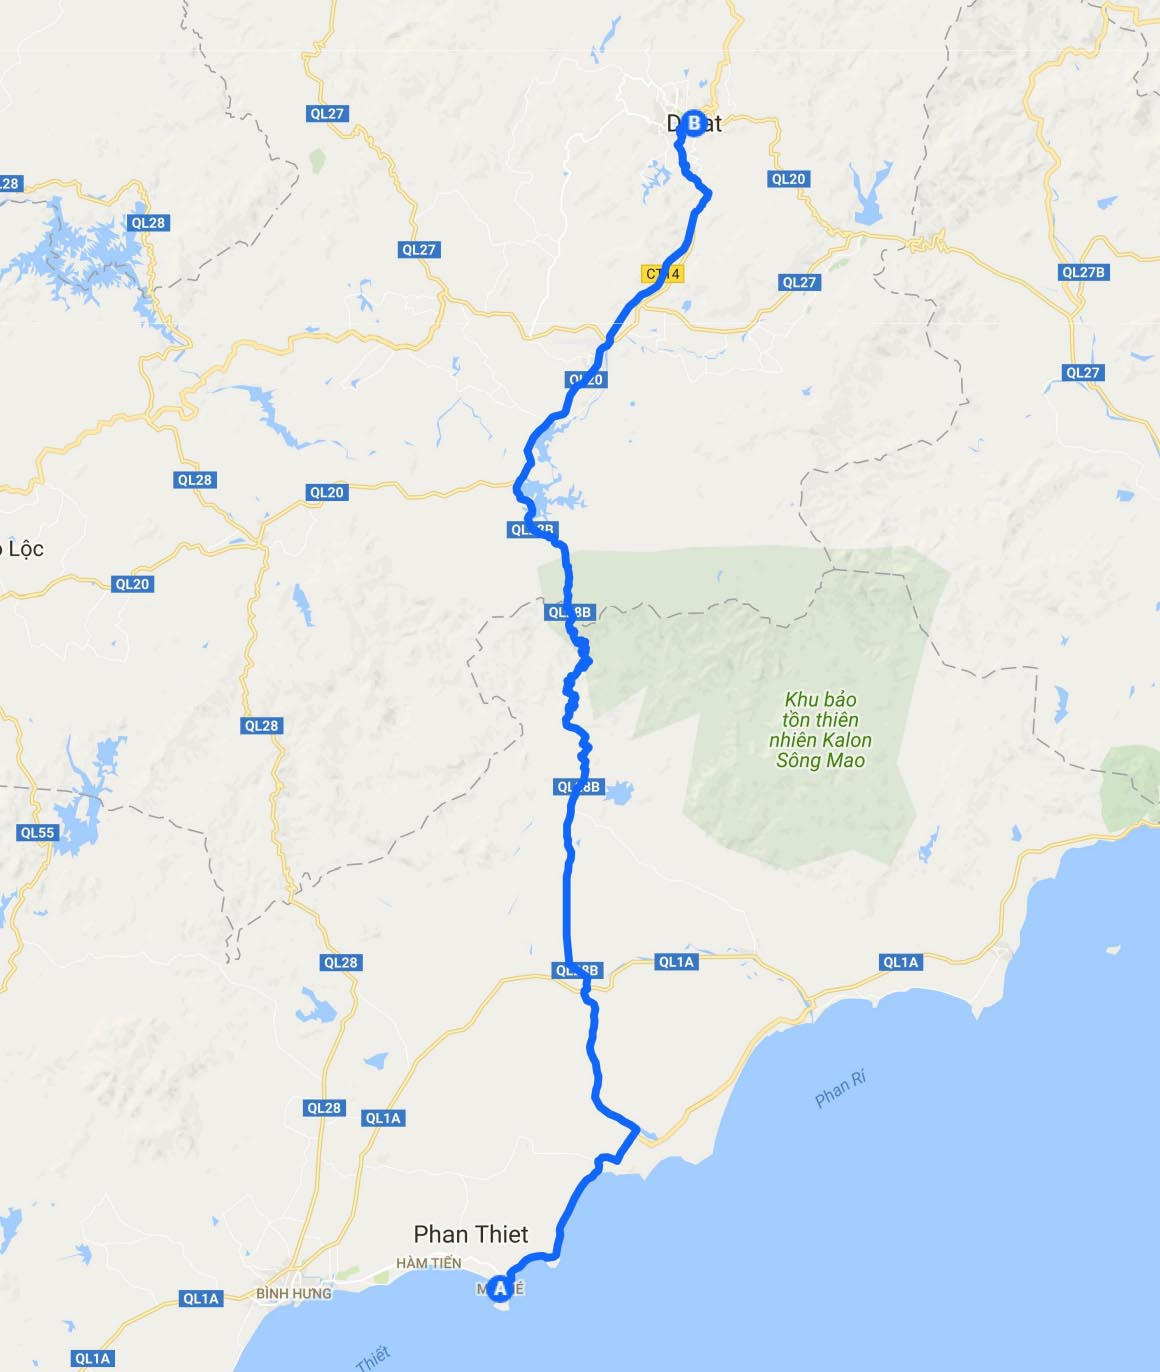 Vietnam Routes And Maps By Motorbike